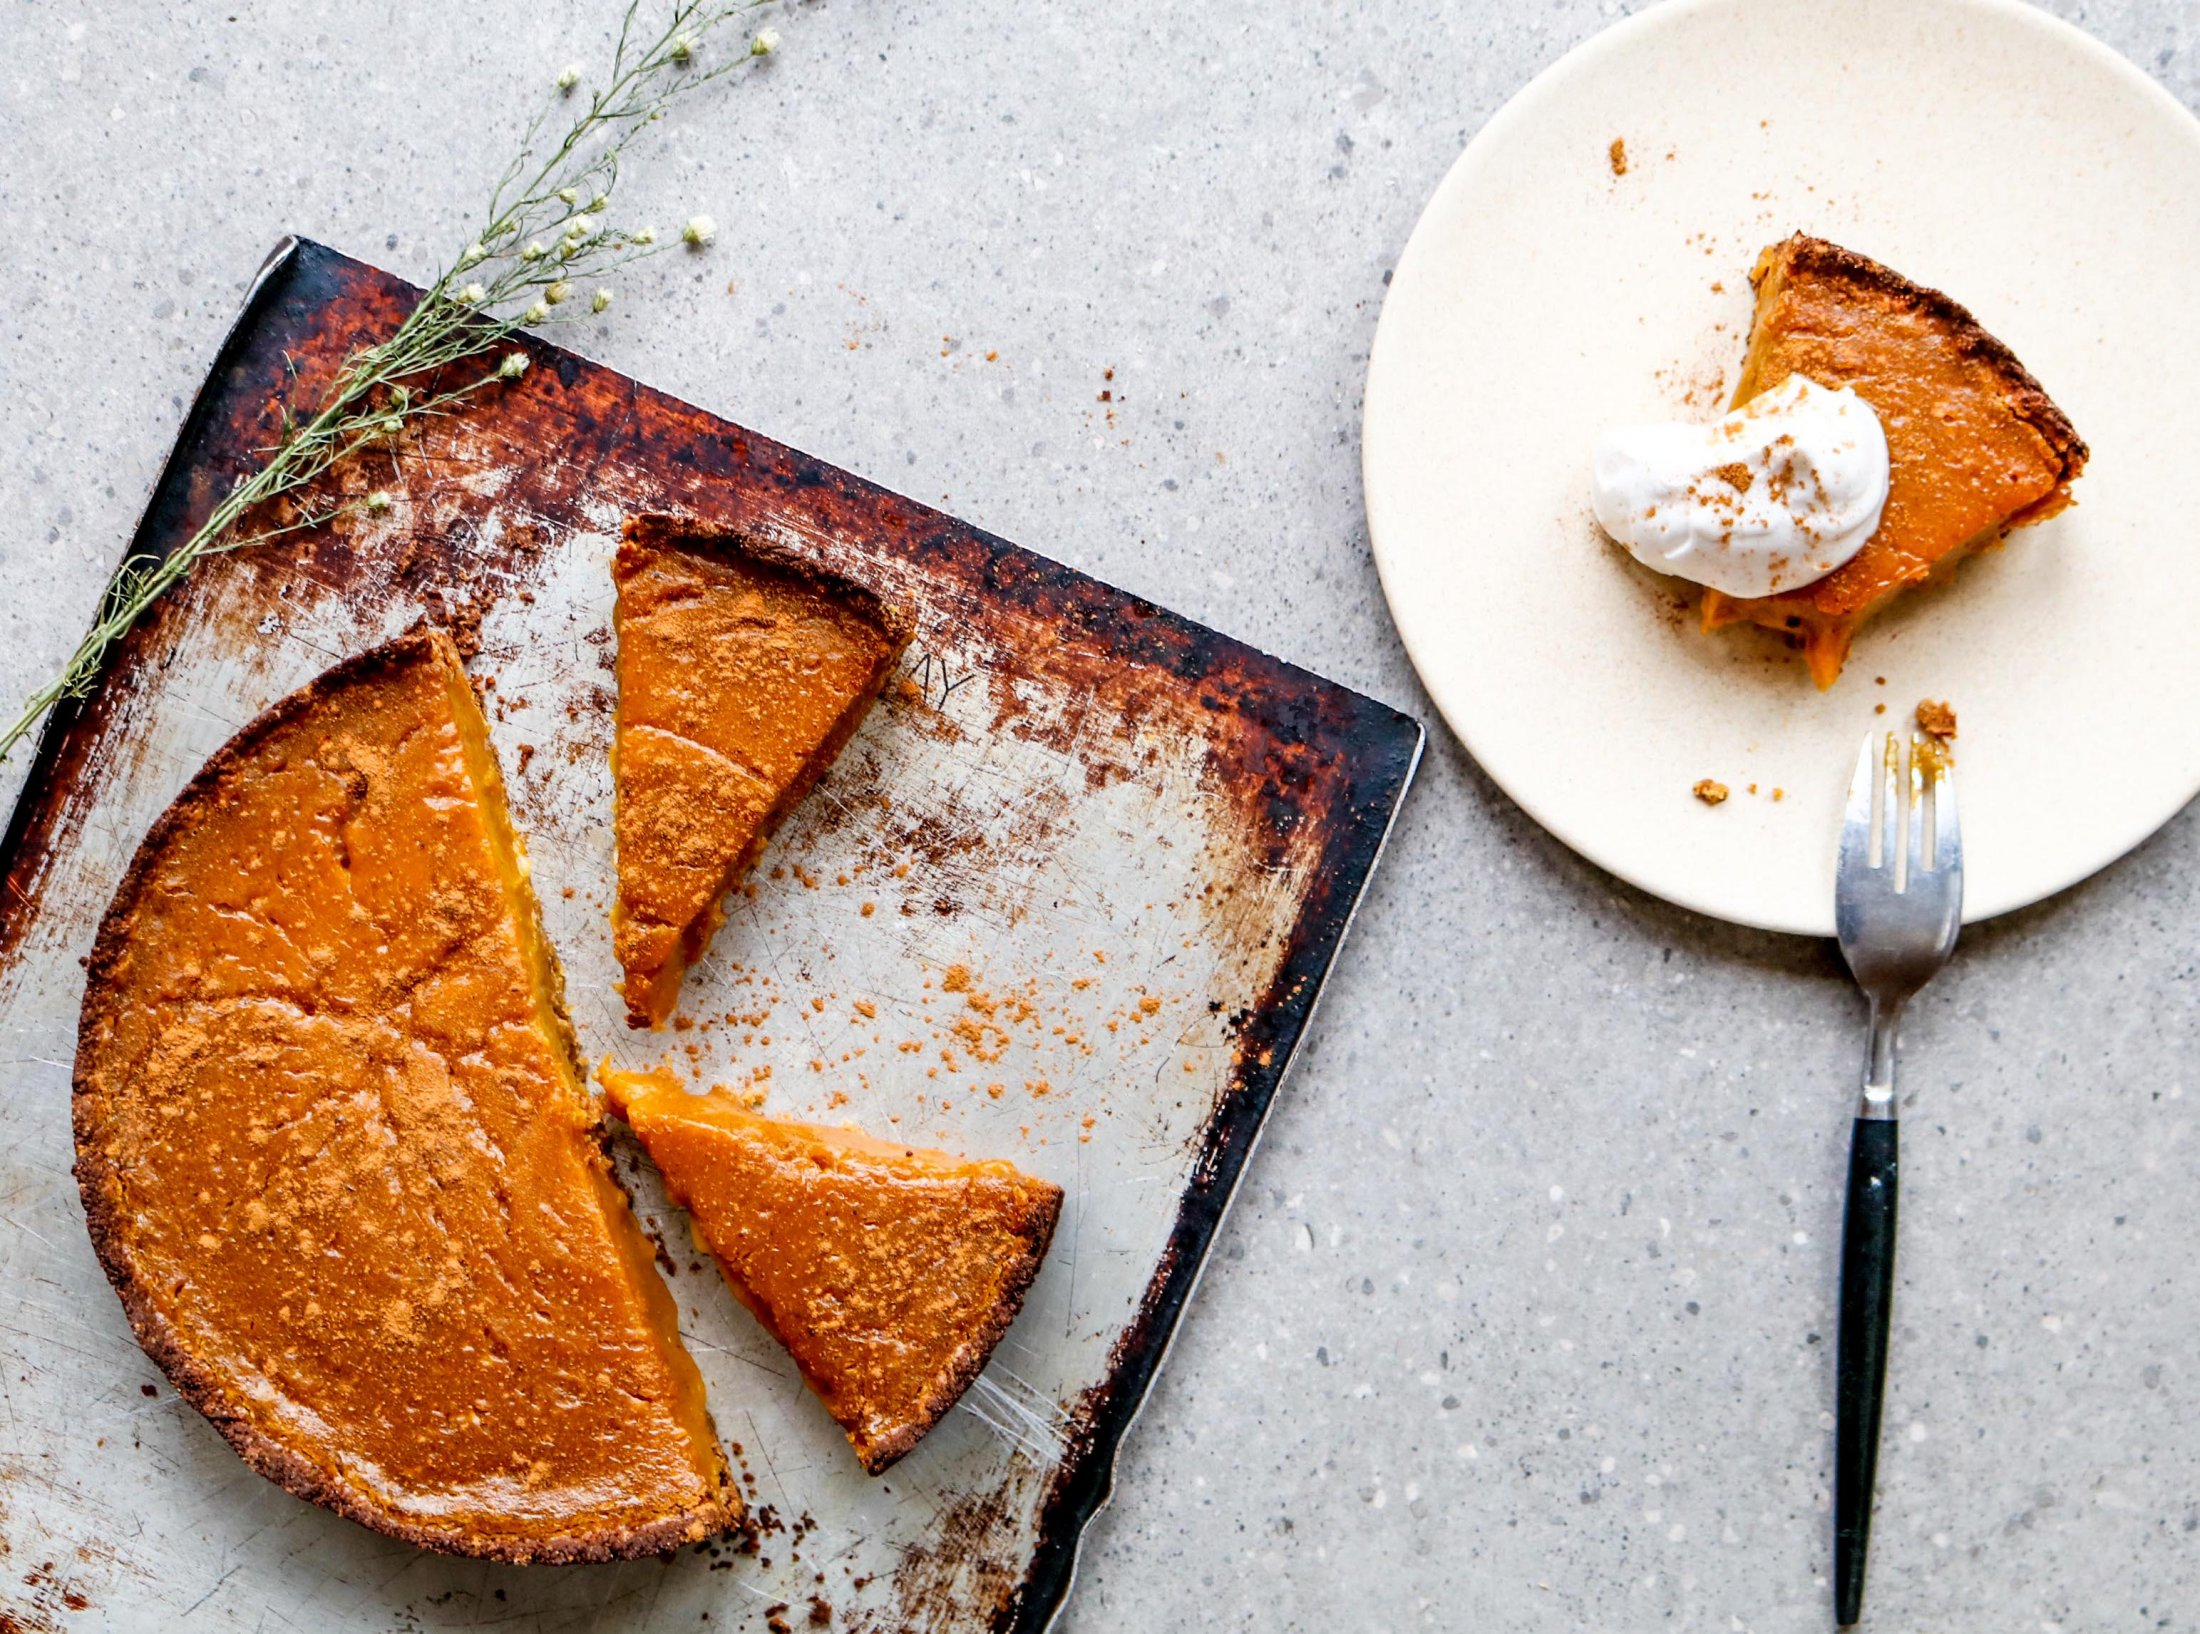 Journal natural harry spiced pumpkin pie wholefood plant based nut free gluten free forumfinder Images